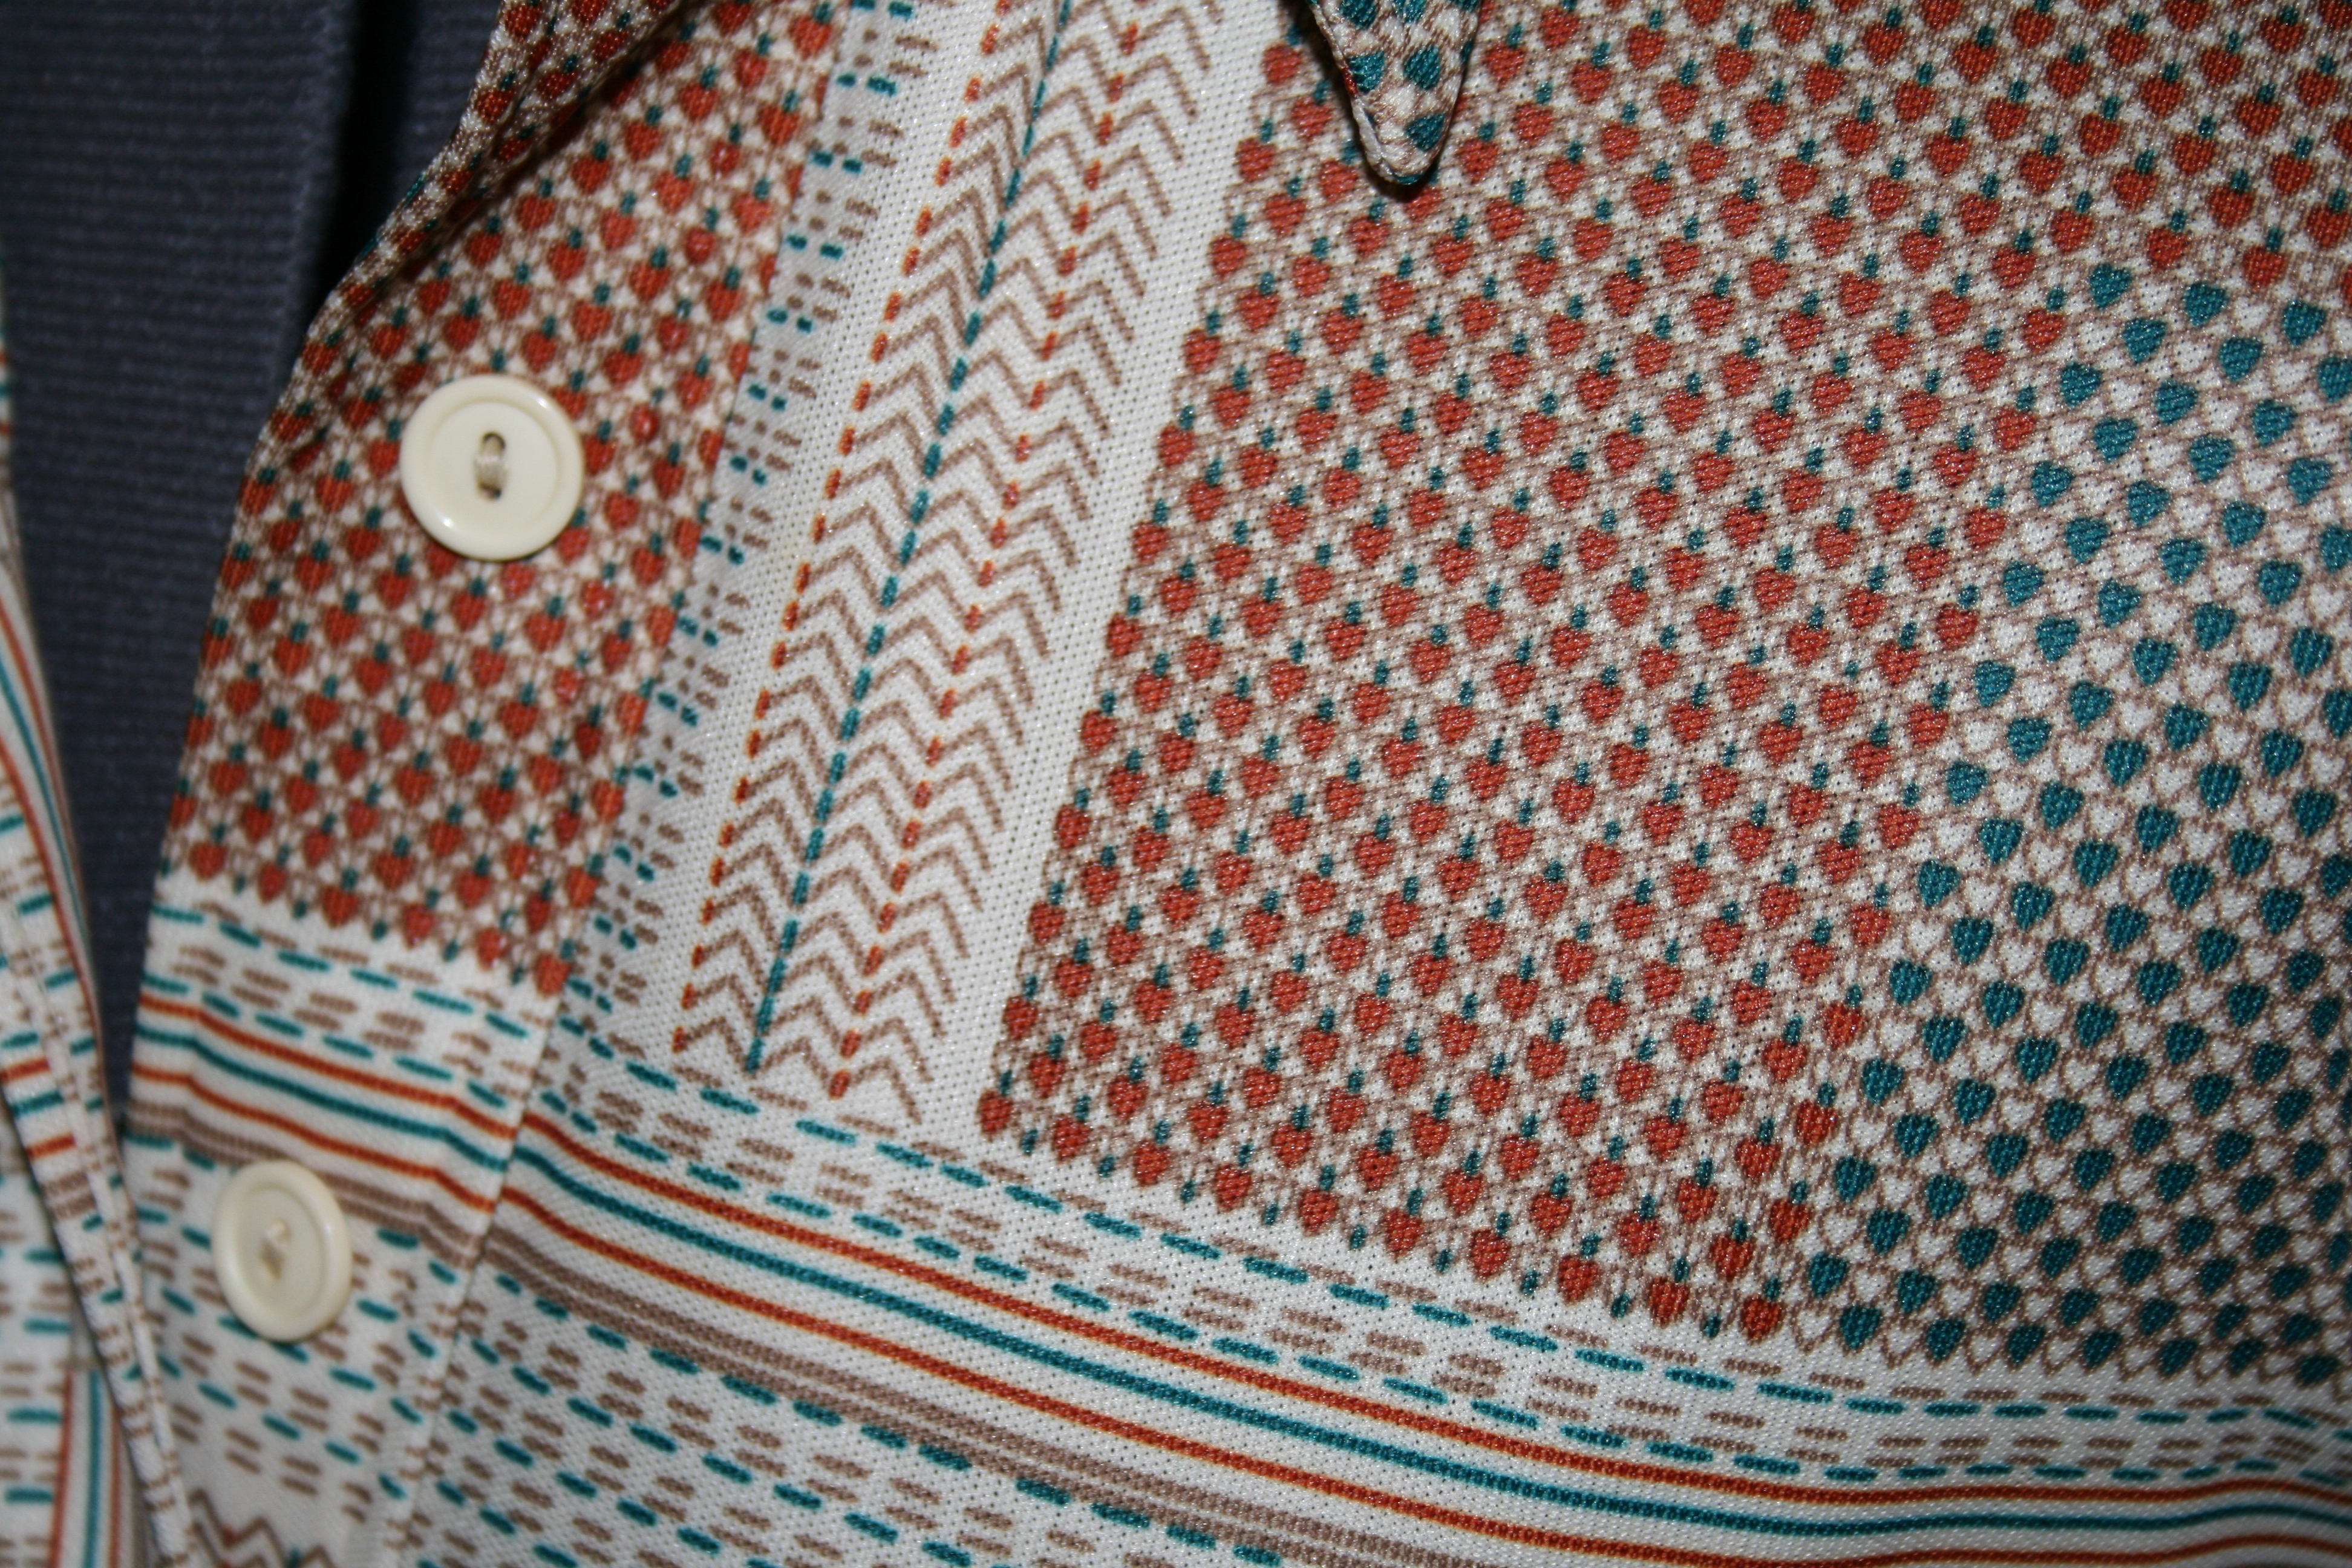 Check out this great vintage patterning.